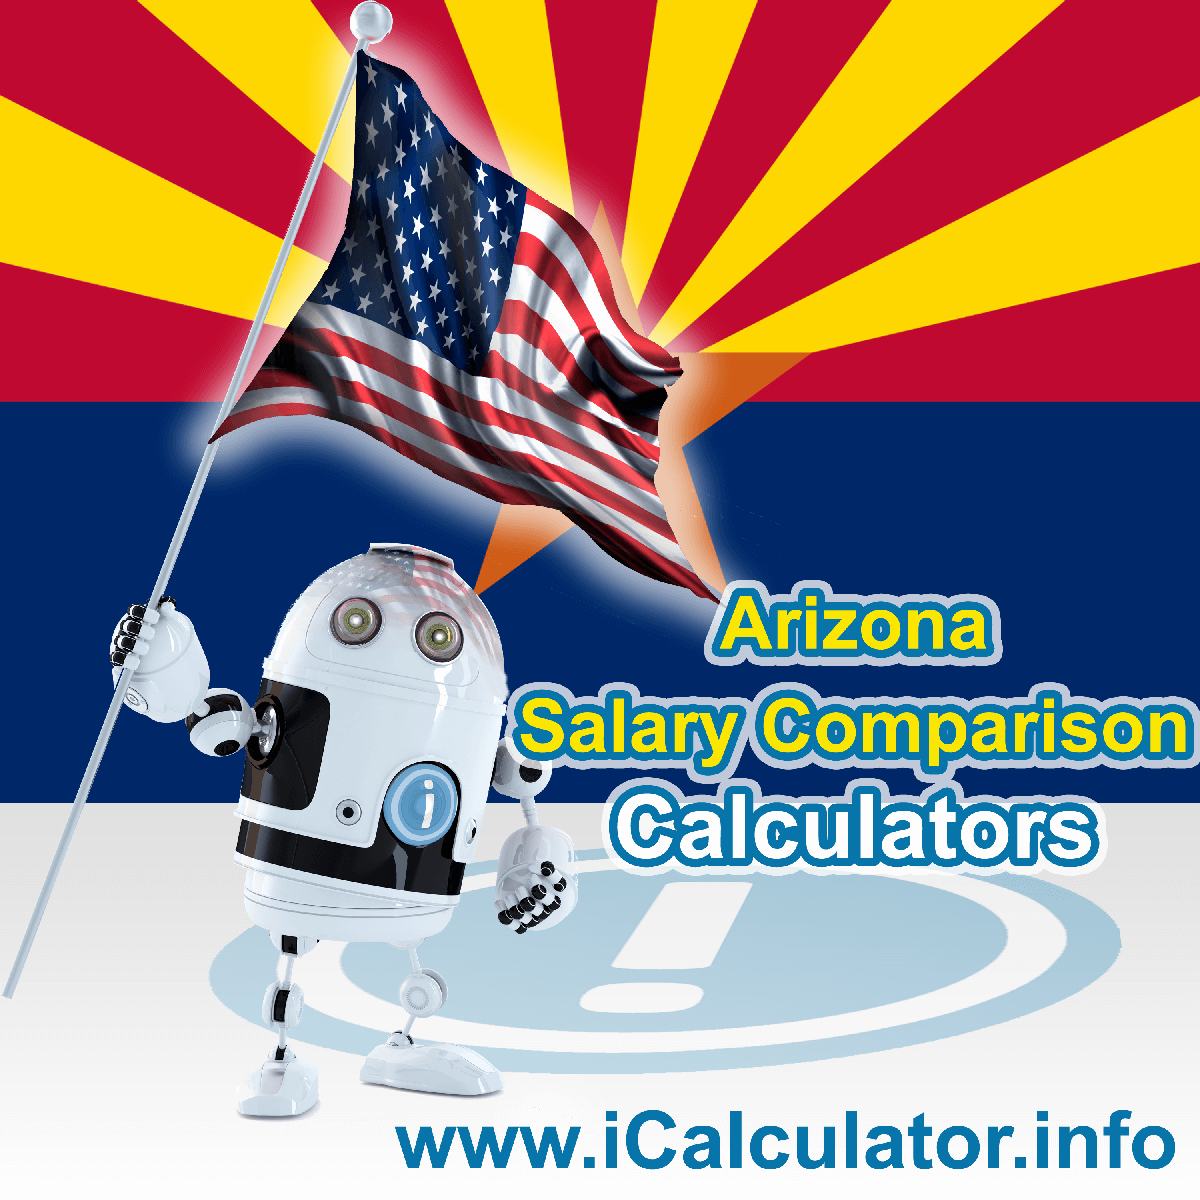 Arizona Salary Comparison Calculator 2020 | iCalculator | The Arizona Salary Comparison Calculator allows you to quickly calculate and compare upto 6 salaries in Arizona or between other states for the 2020 tax year and historical tax years. Its an excellent tool for jobseekers, pay raise comparison and comparison of salaries between different US States